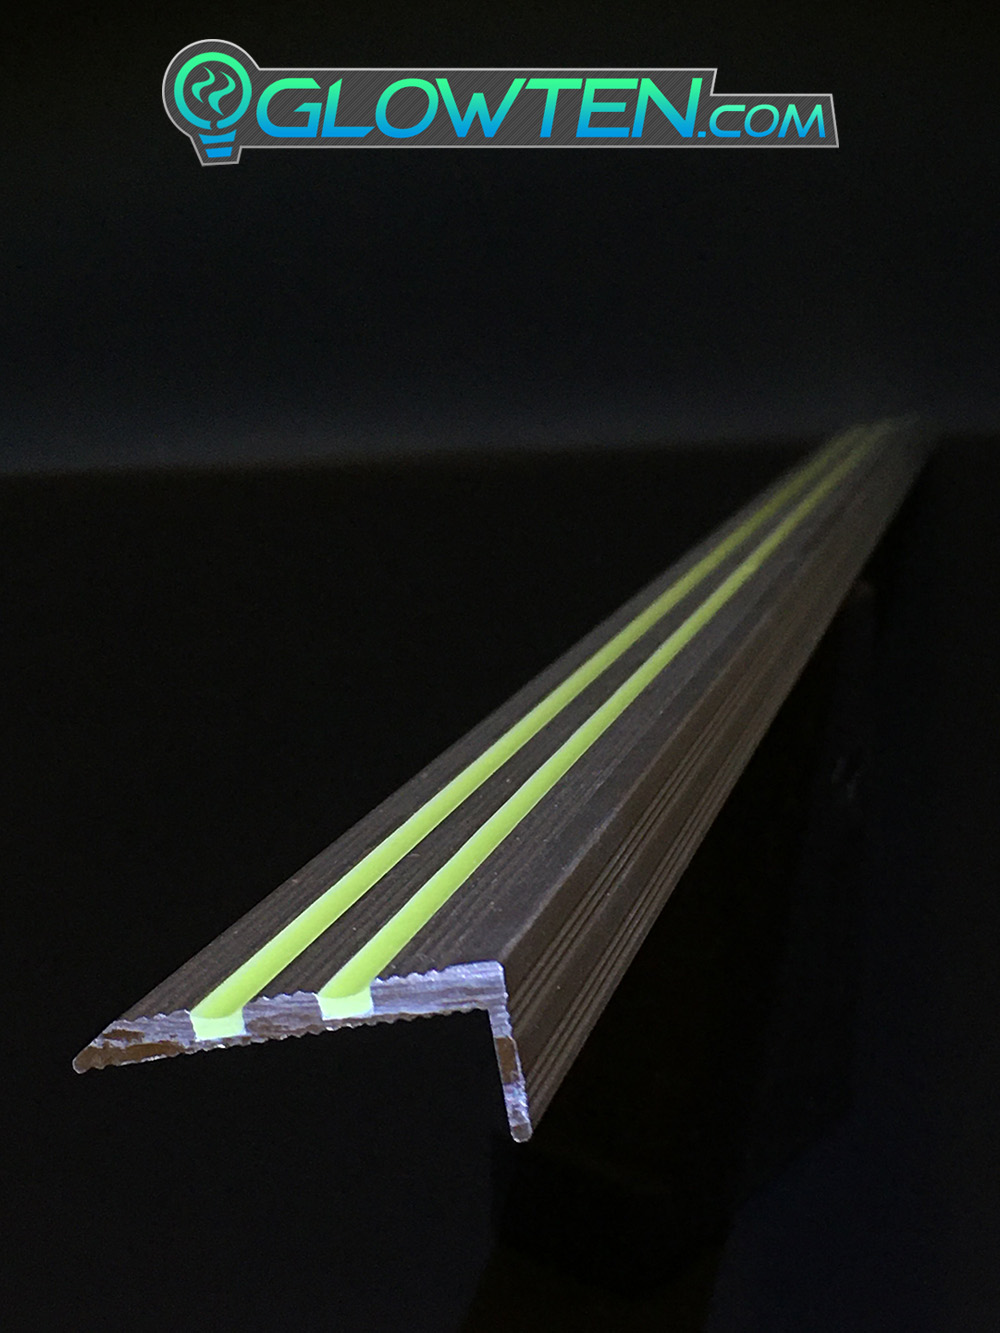 GLOWTEN.com - ANTI-SLIP STAIRS Traction TREAD 2-BANDS GLOW IN THE DARK LUMINOUS SAFETY STRIP NON-SKID SEE BETTER AT NIGHT PREVENT FALLING FOR MINIMUM 31.5